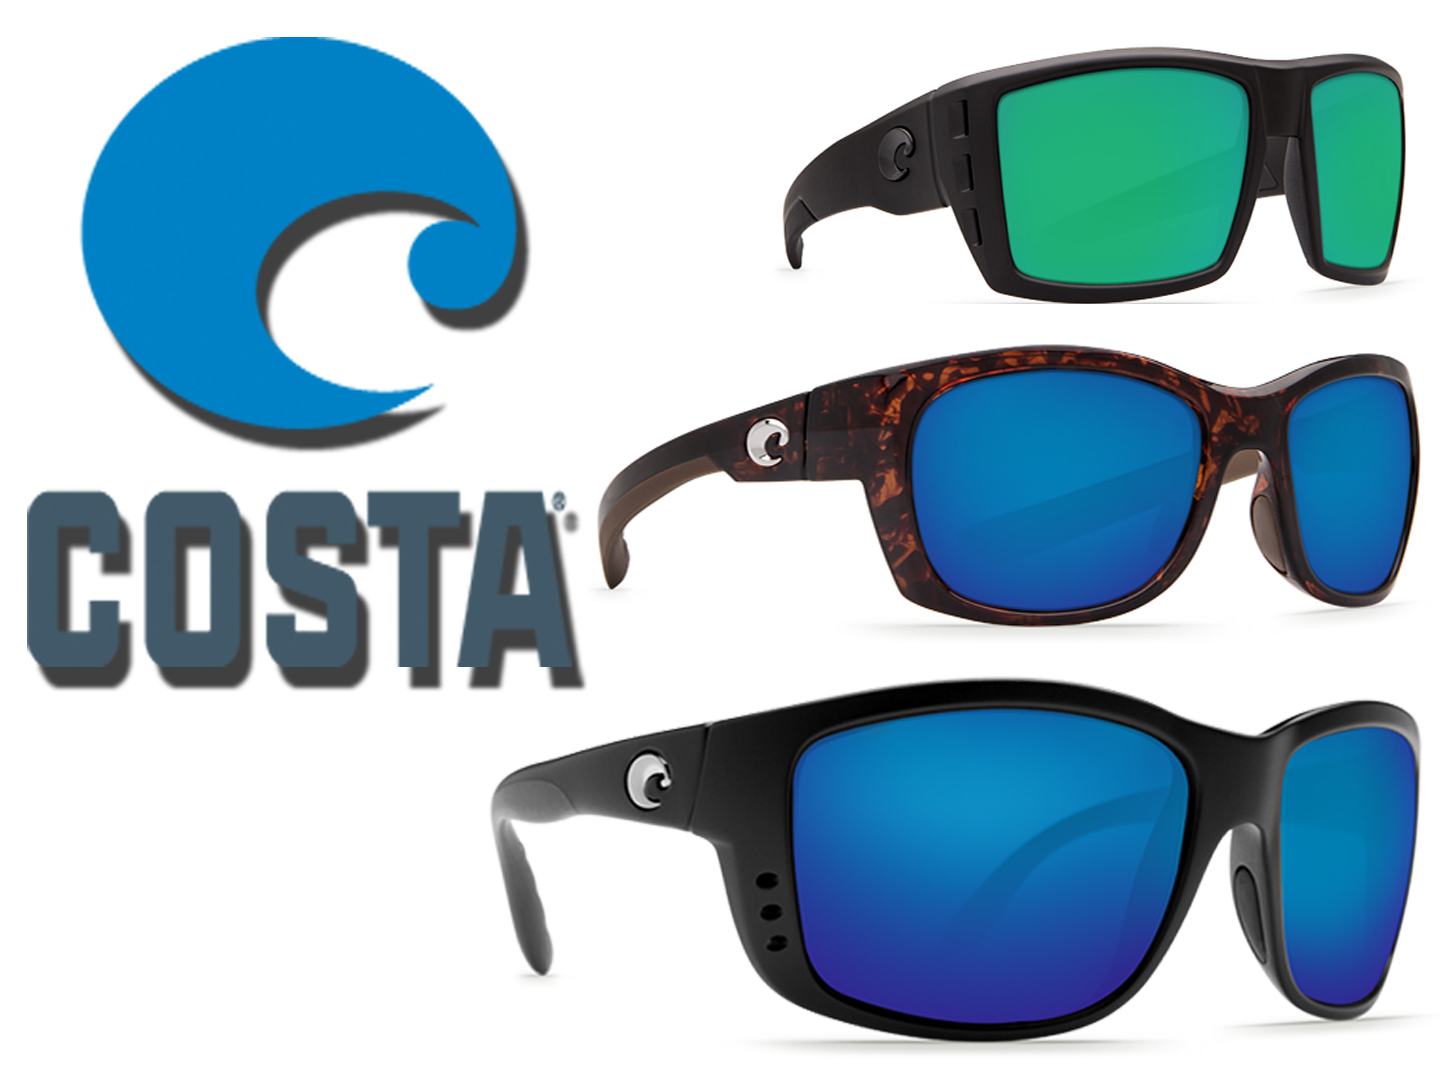 5f1334d2c88 There s no question that Costa produces some of the highest-quality eyewear  for on-the-water activities